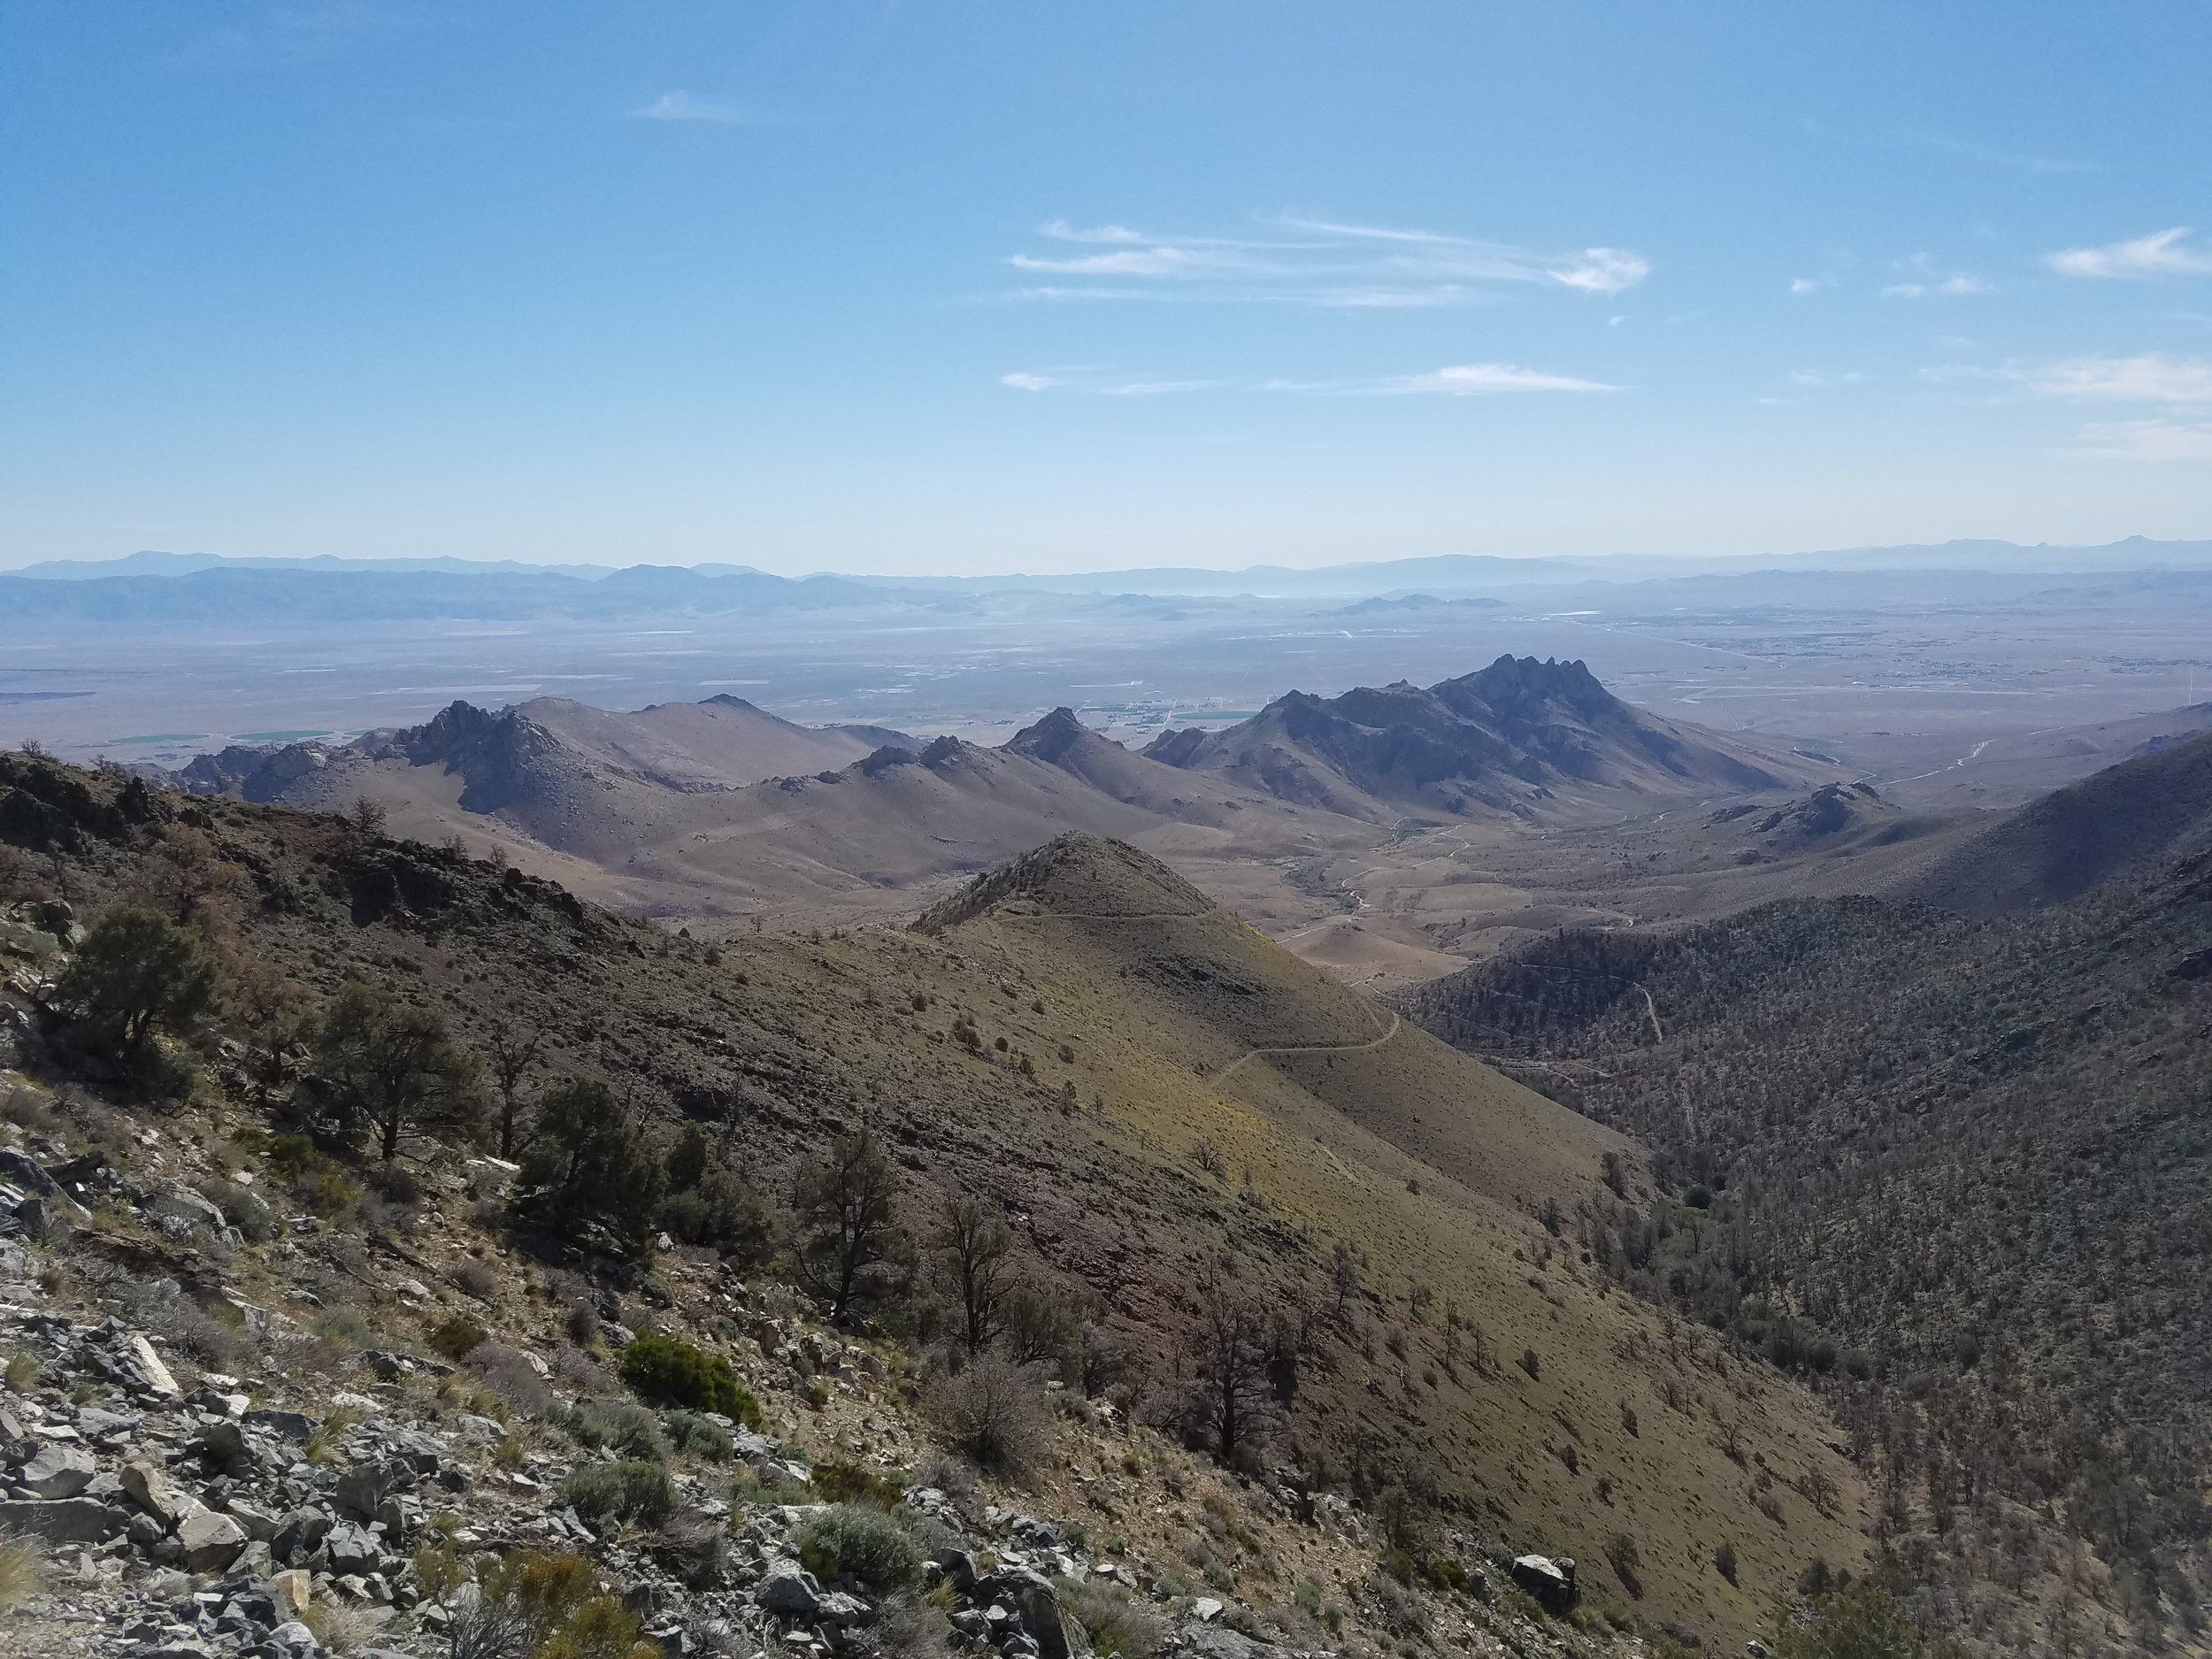 Overlooking the Owens Valley and Ridgecrest